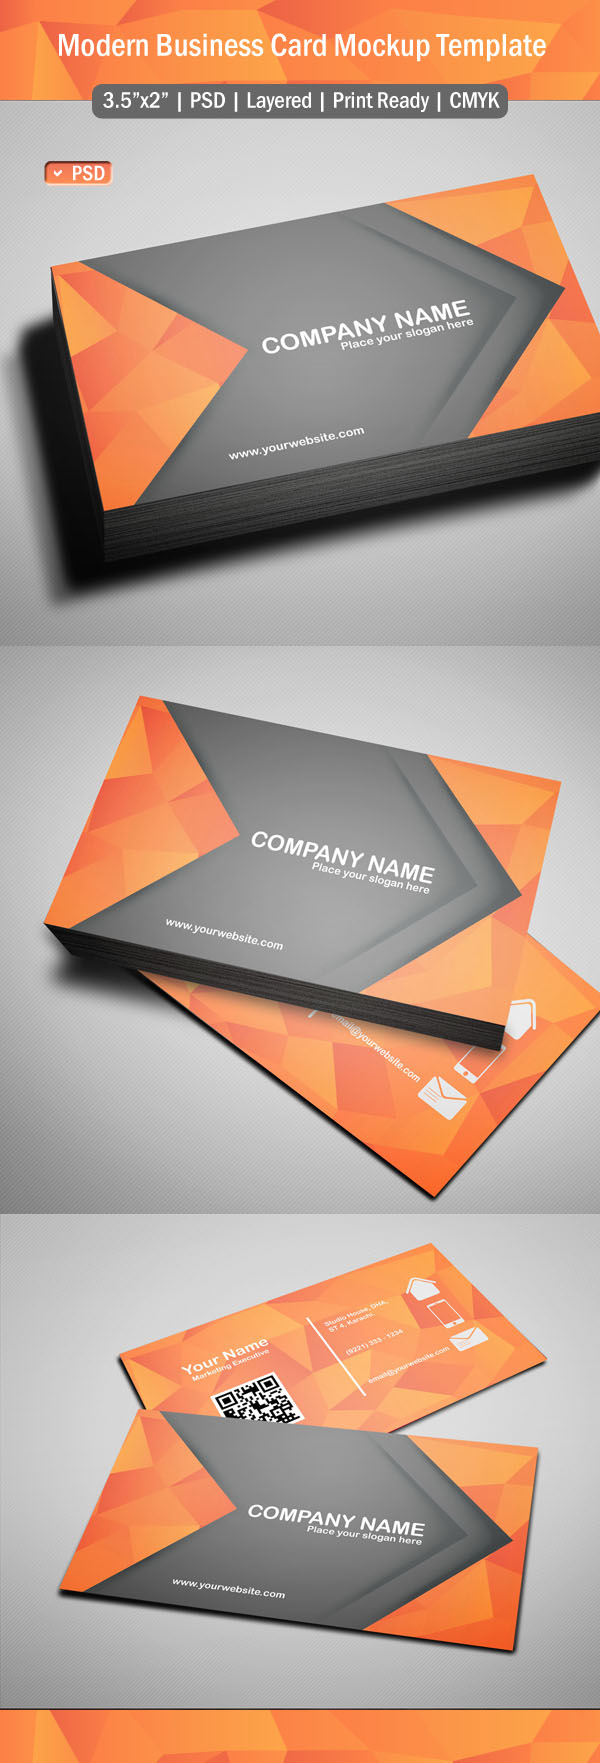 Free psd files download 25 ui design photoshop psd resources free modern business card template psd reheart Choice Image